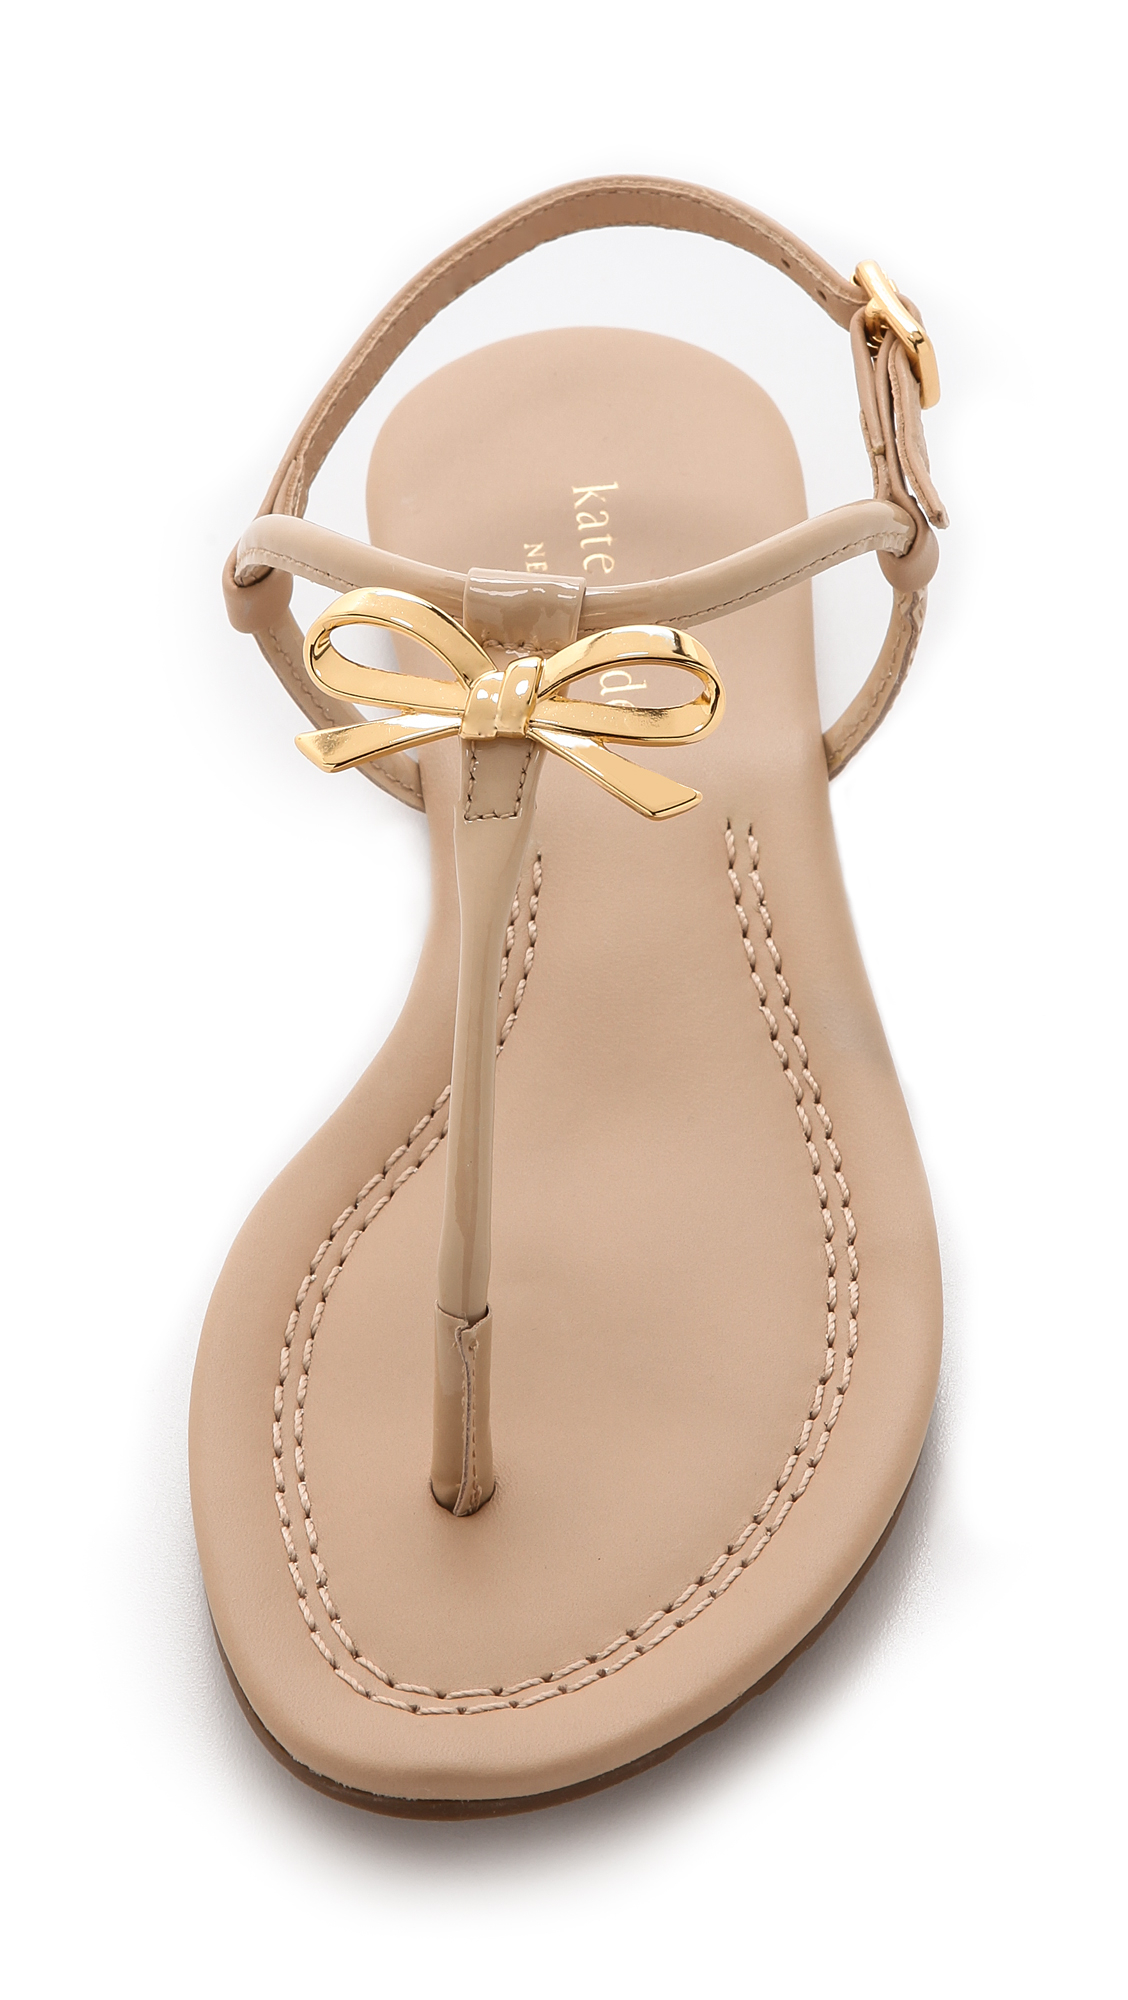 Kate spade new york Tracie Bow Thong Sandals in Natural | Lyst